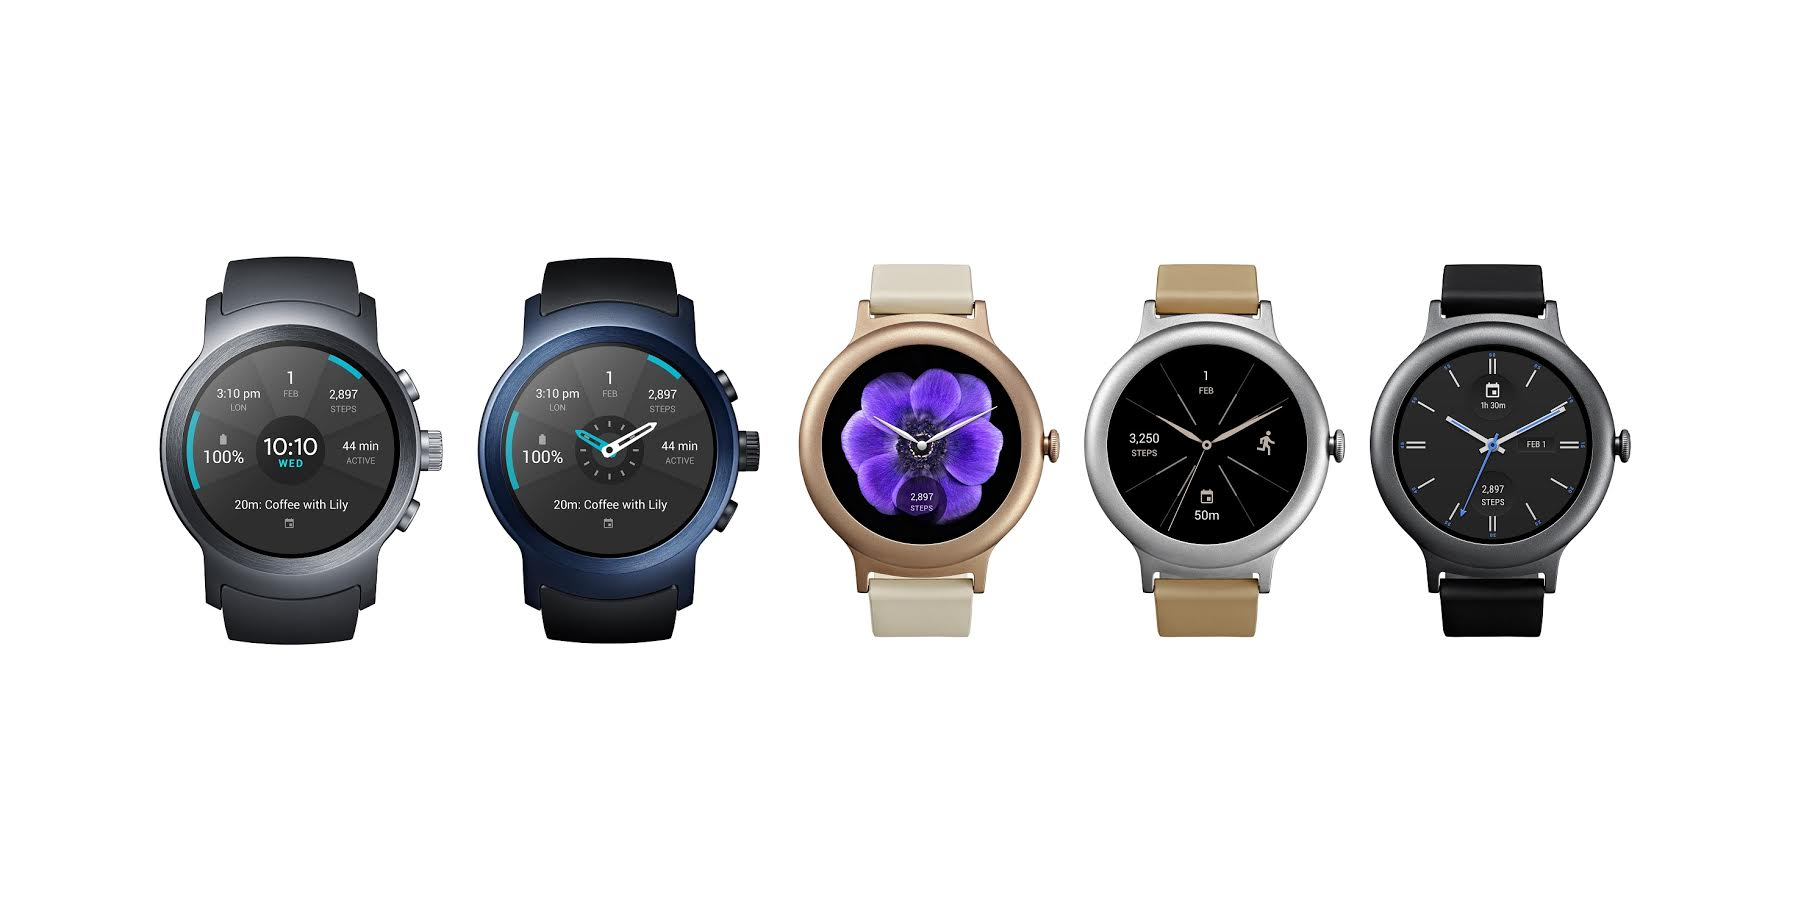 LG Watch Sport Android Wear 2.01